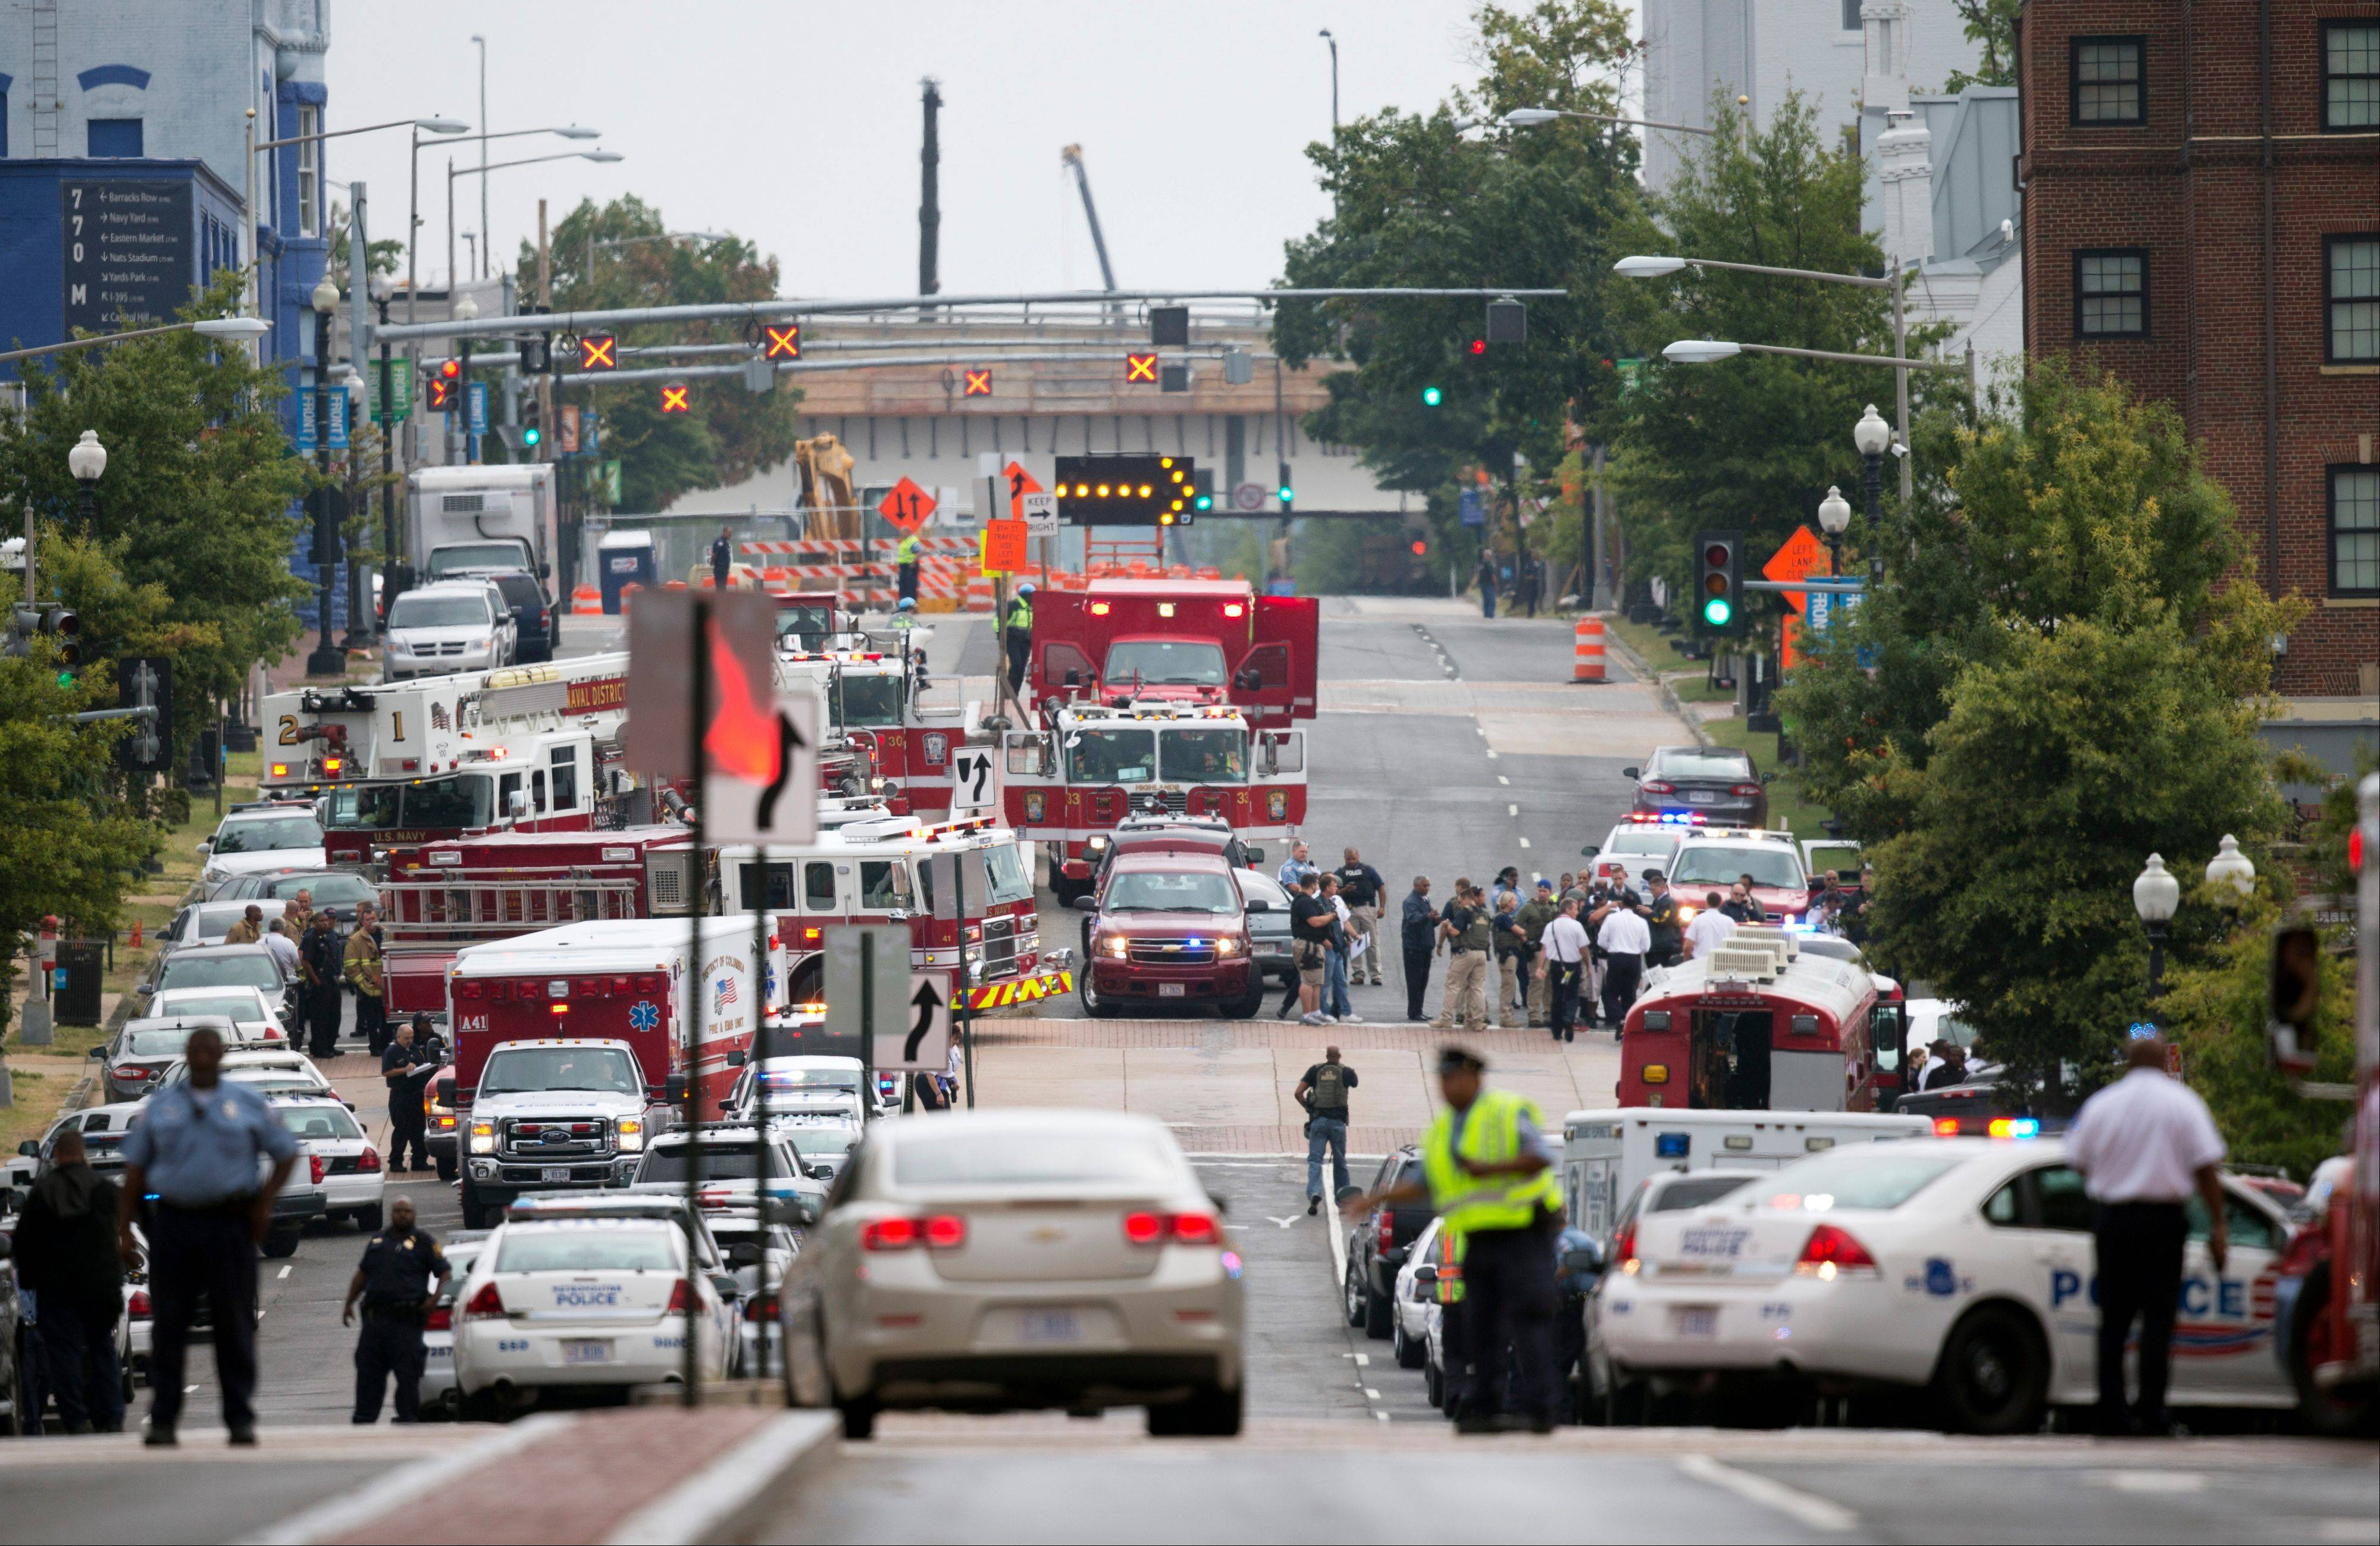 Emergency personnel respond to a reported shooting at the Washington Navy Yard, Monday.